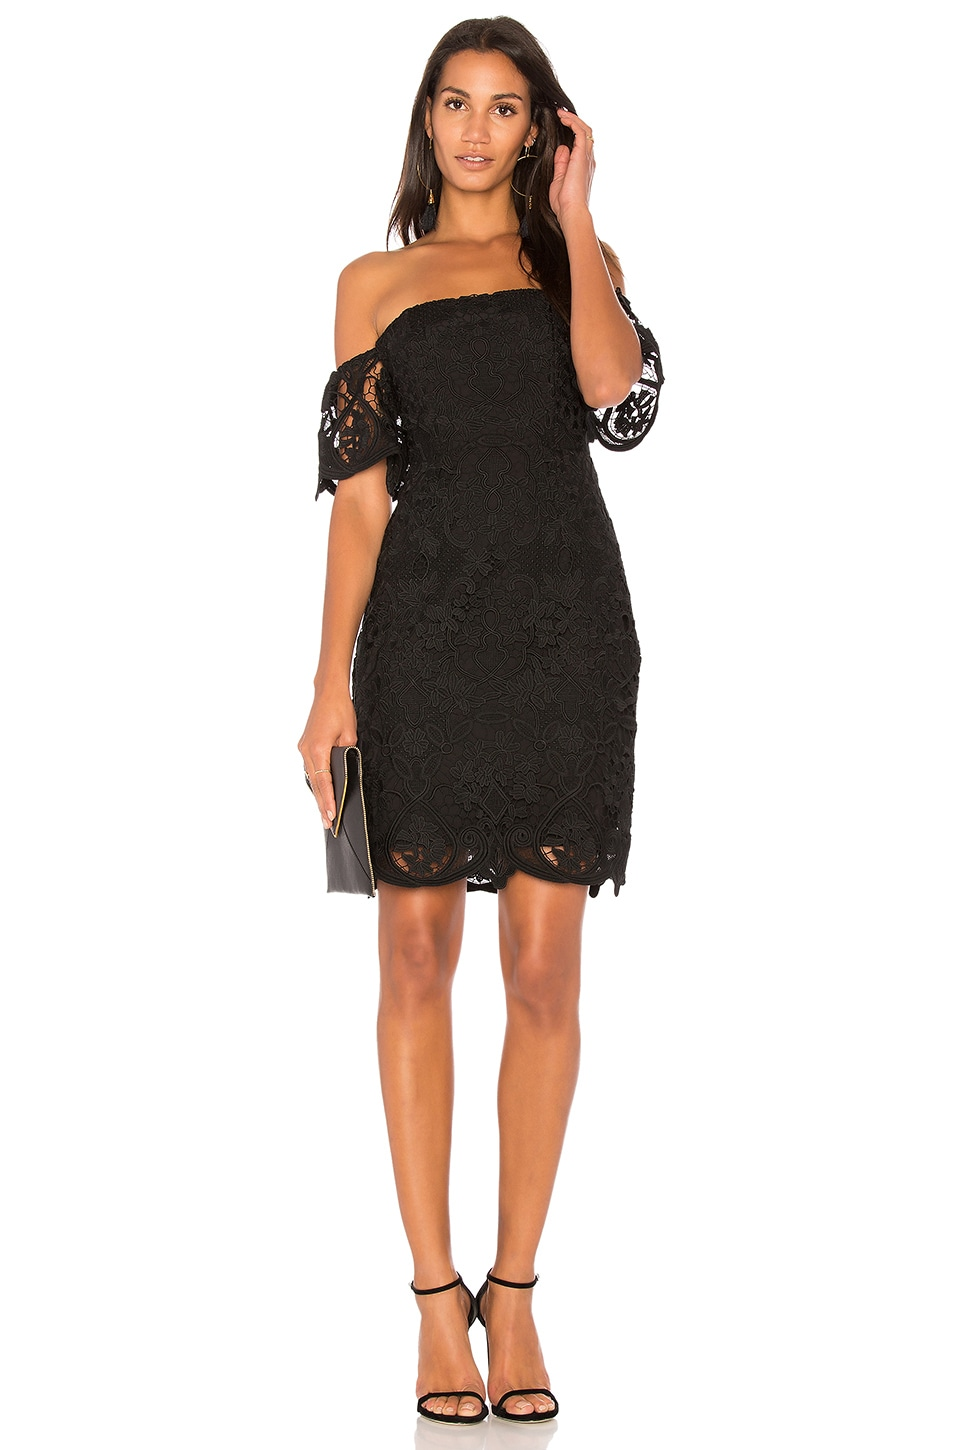 BB Dakota RSVP by BB Dakota Nathalie Dress in Black